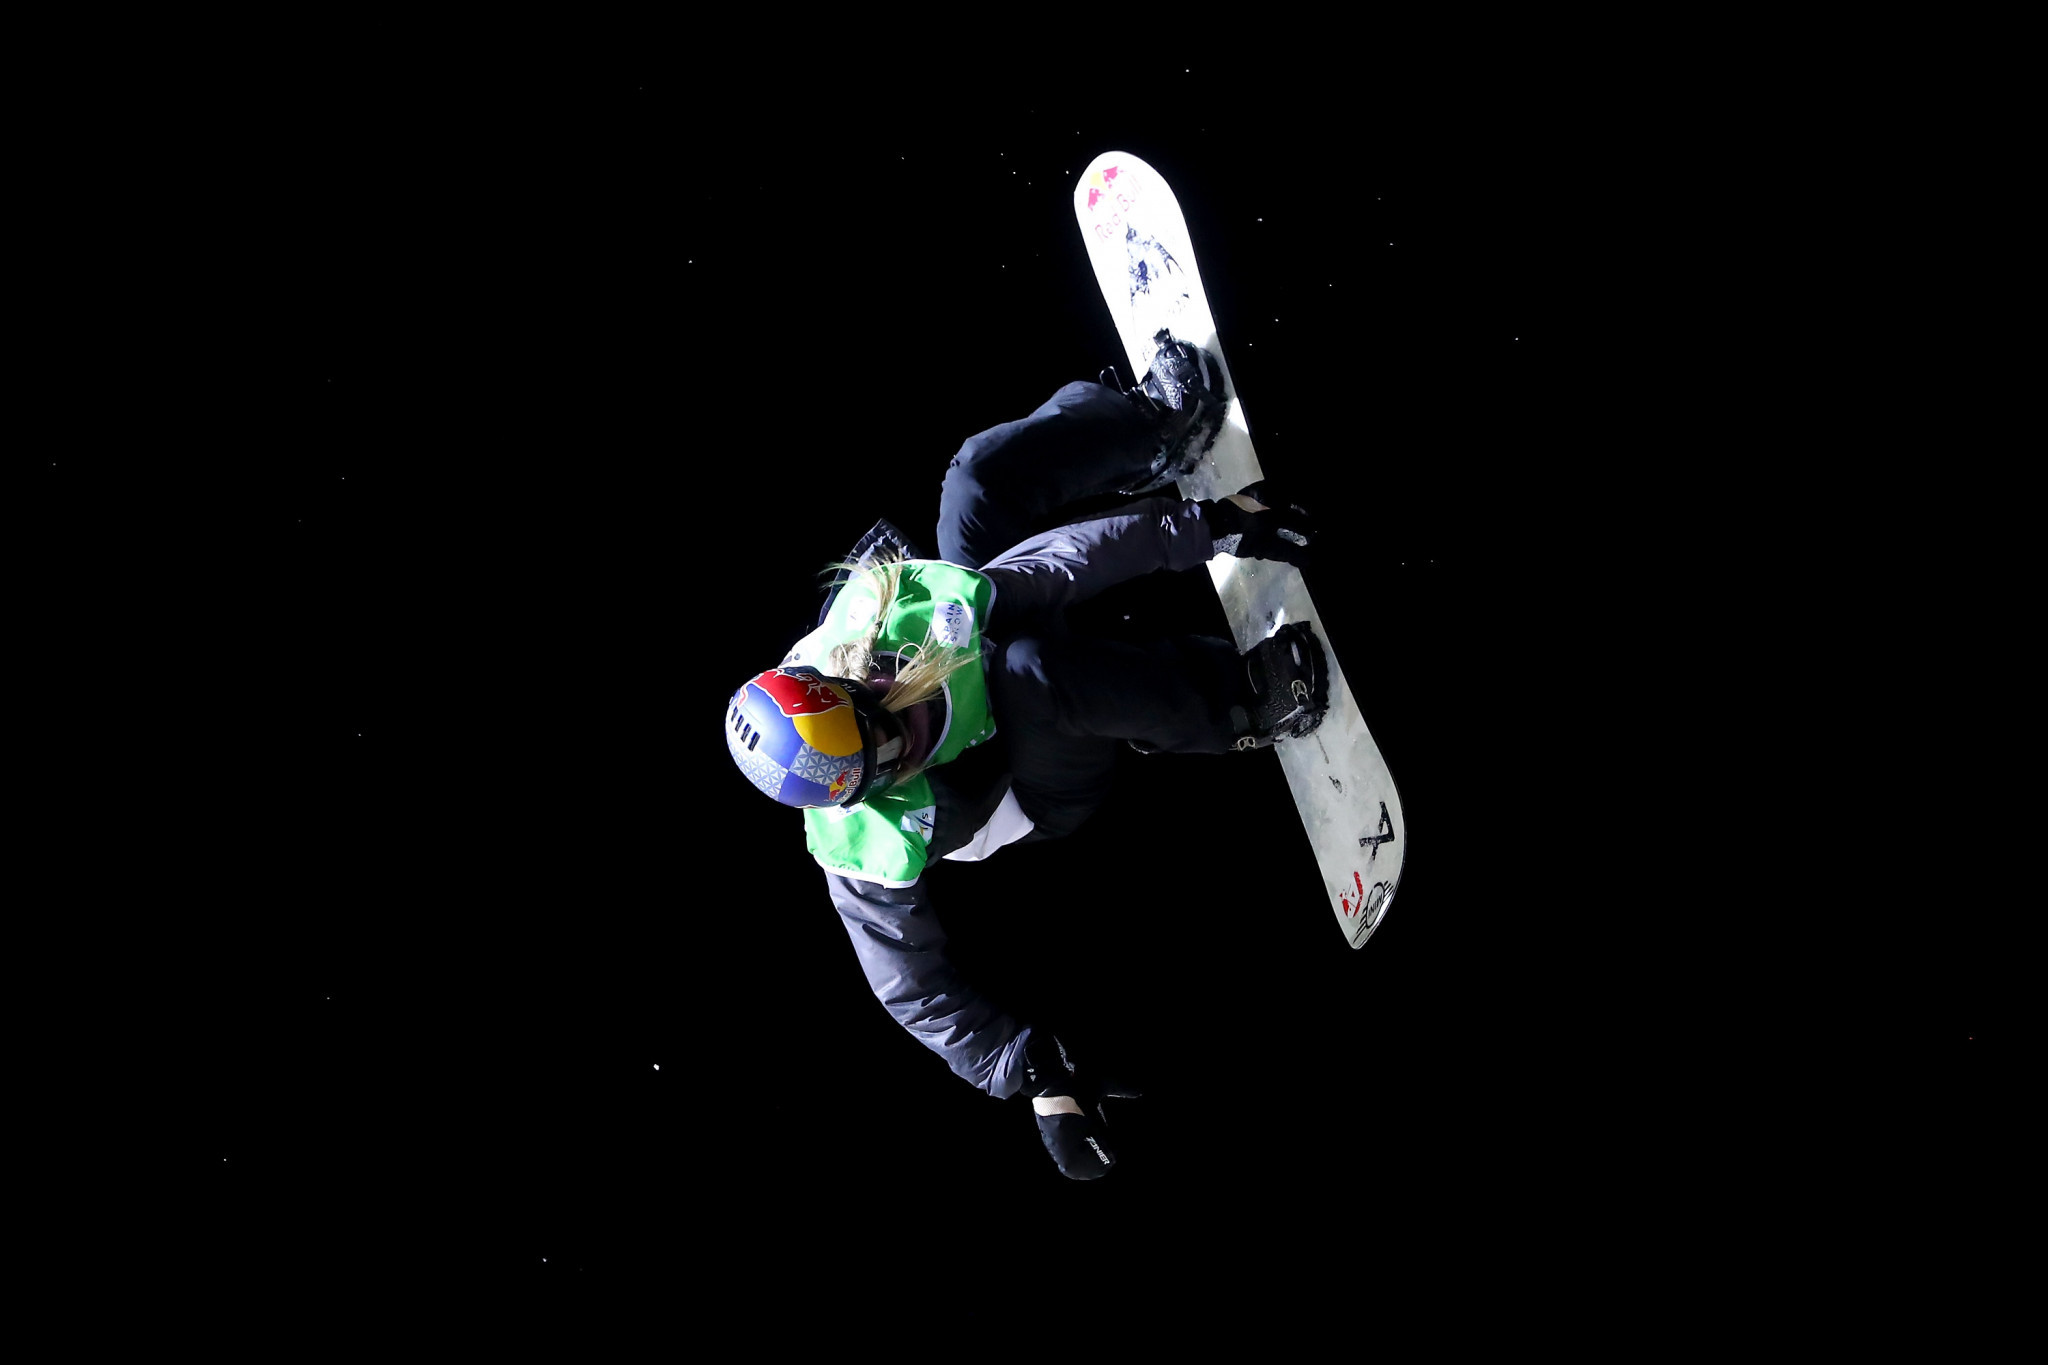 Anna Gasser is the big air world champion and World Cup winner ©Getty Images